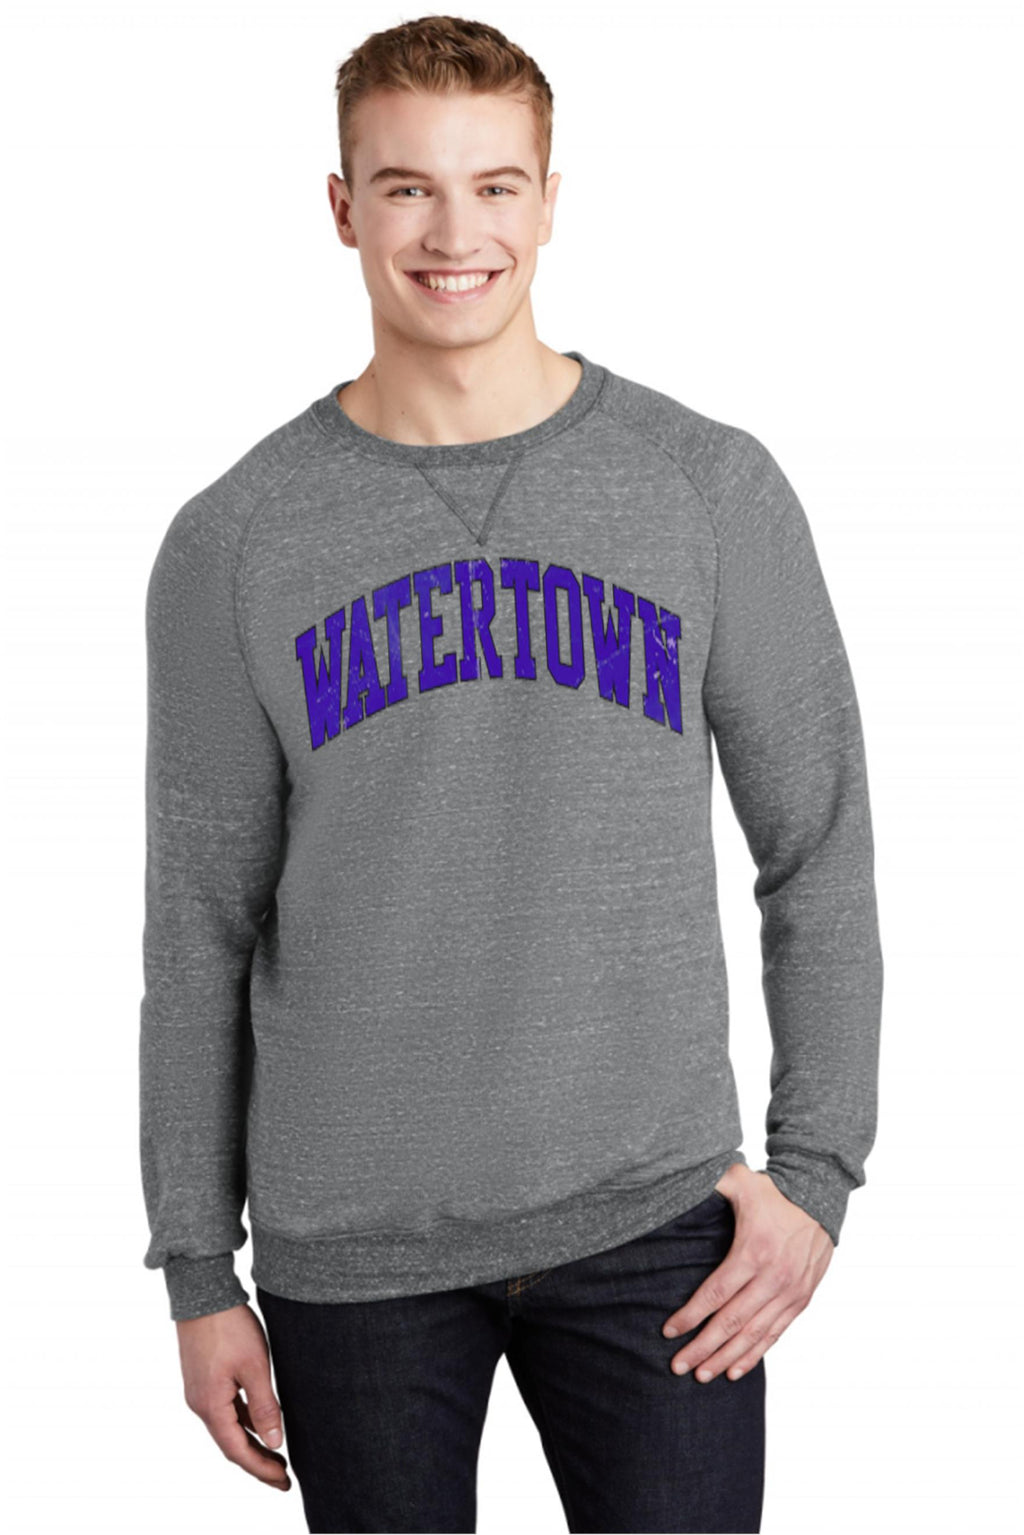 Watertown Crew Neck Sweatshirt